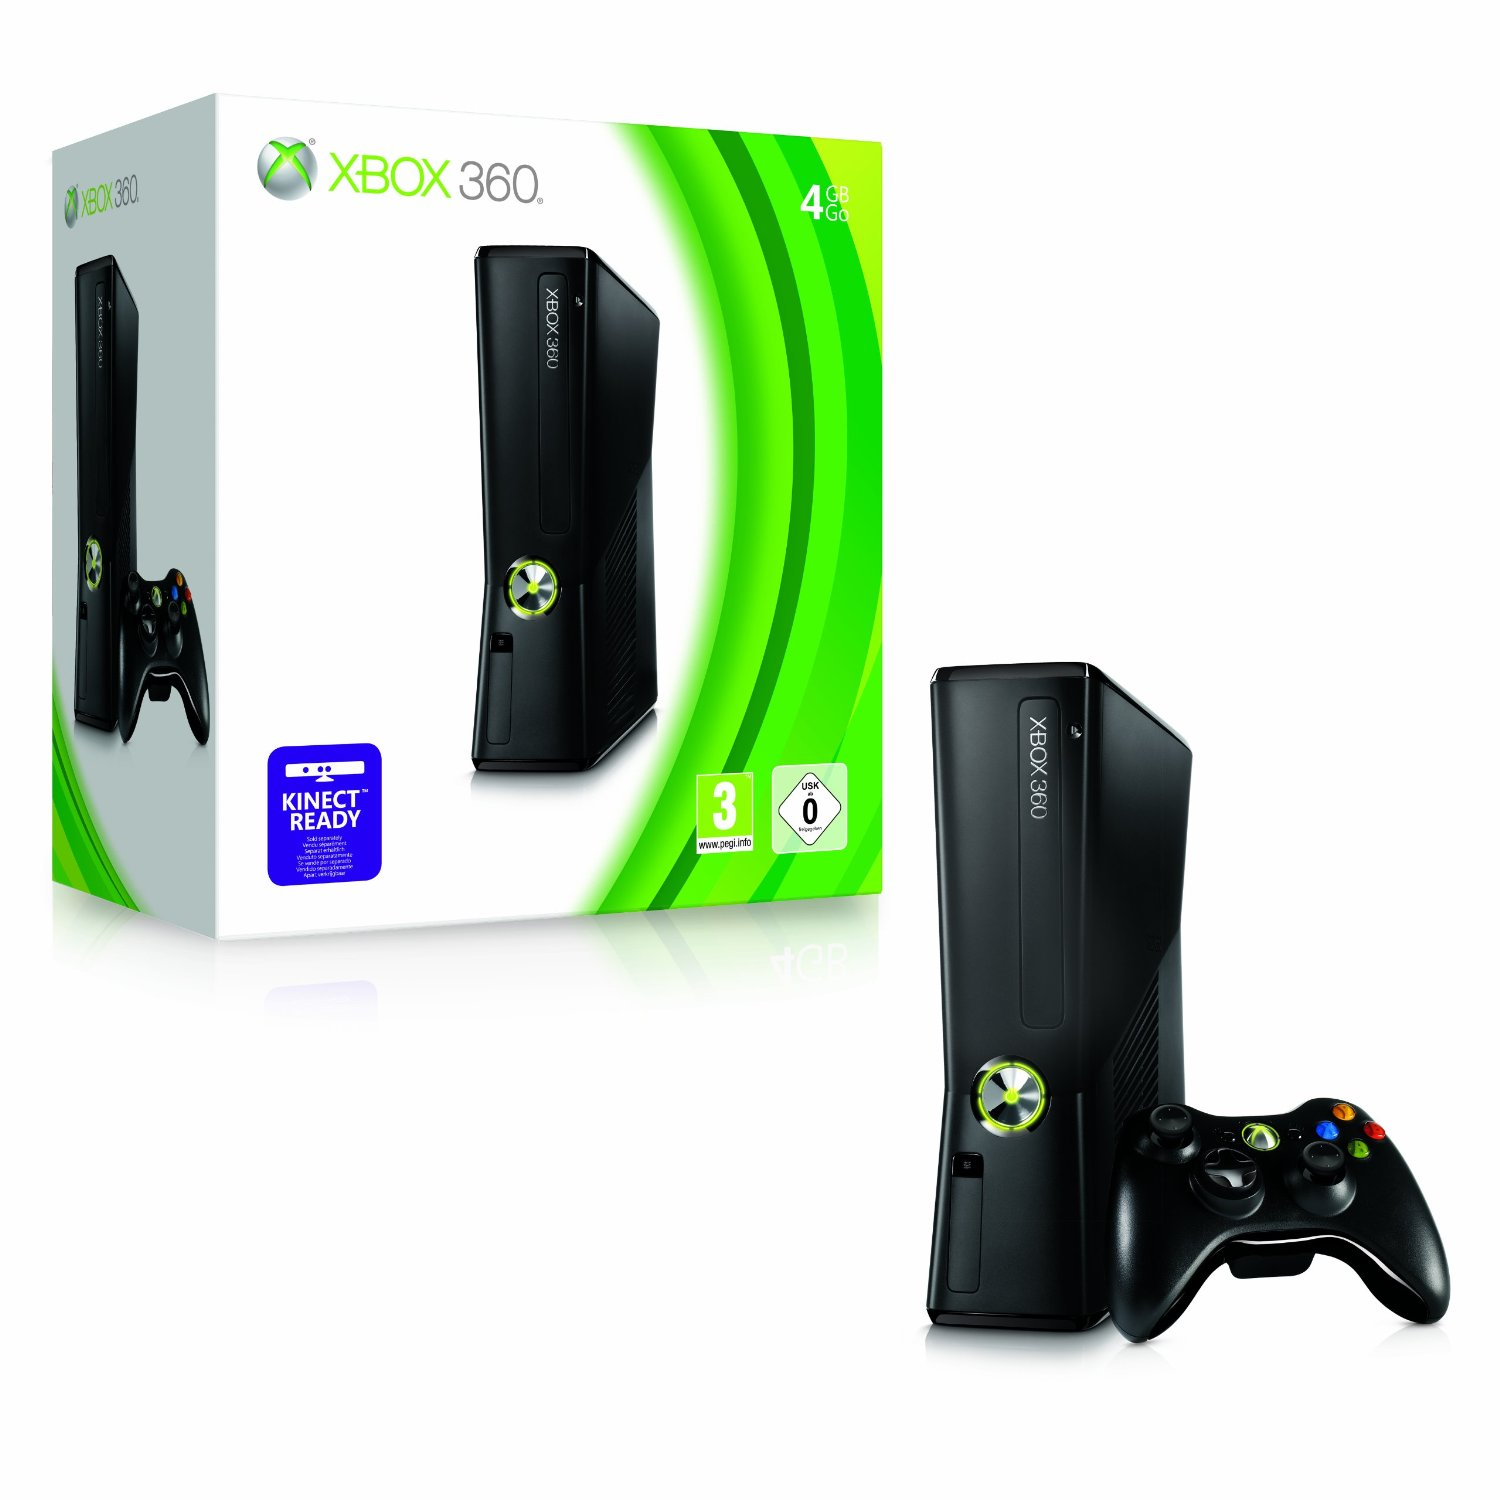 xbox 360 reviews 4gb vs 250gb